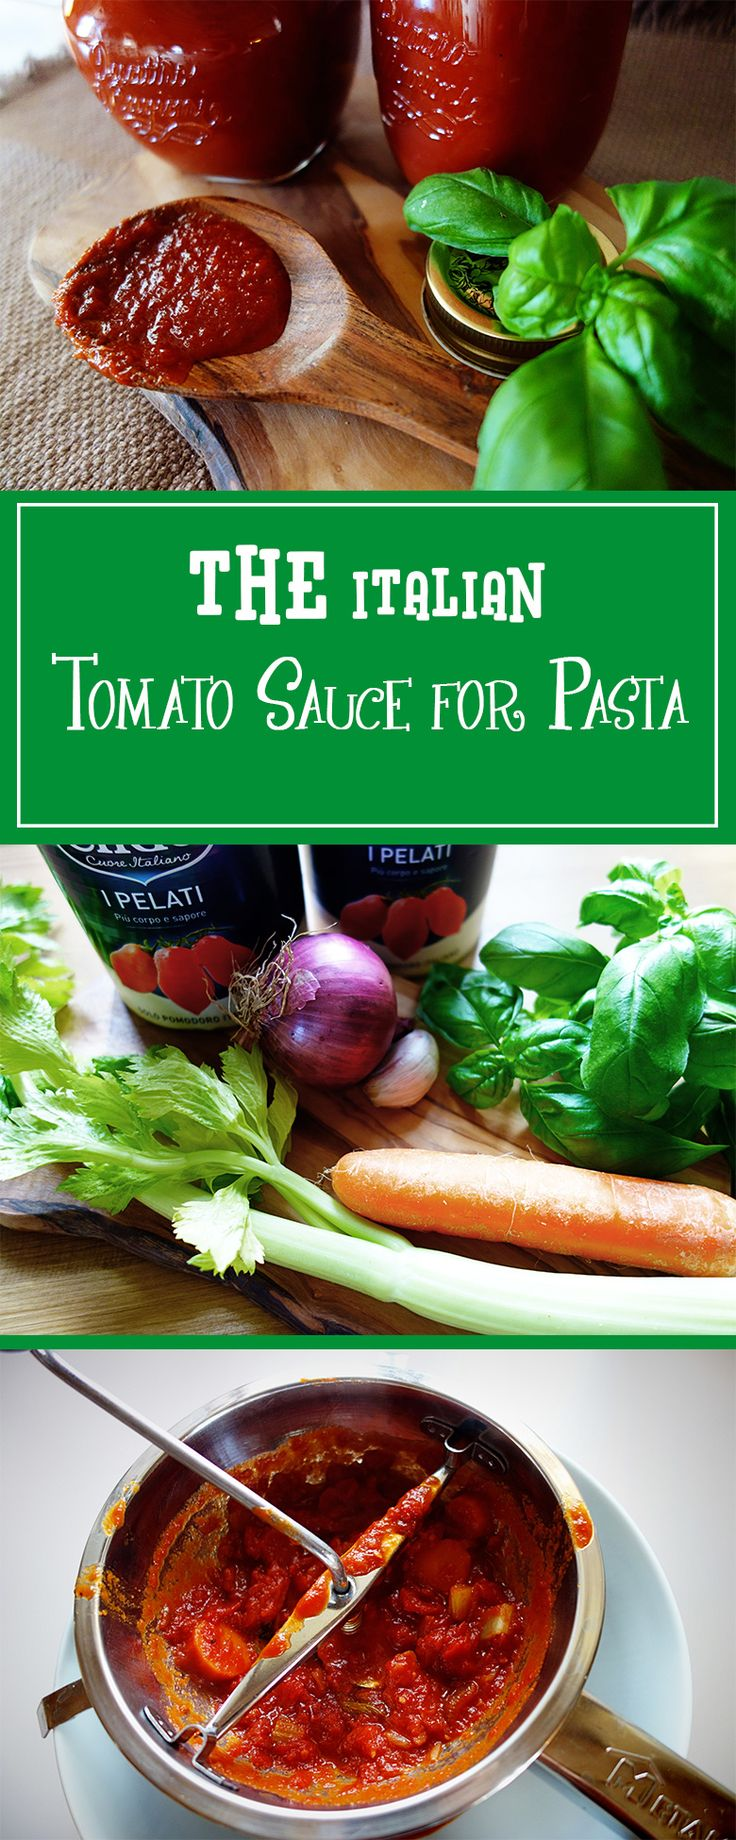 THE Italian Tomato Sauce for Pasta - simply bring Italy to your home & make your family happy with this delicious recipe! Moreover gluten-free & vegetarian.  | cucina-con-amore.com